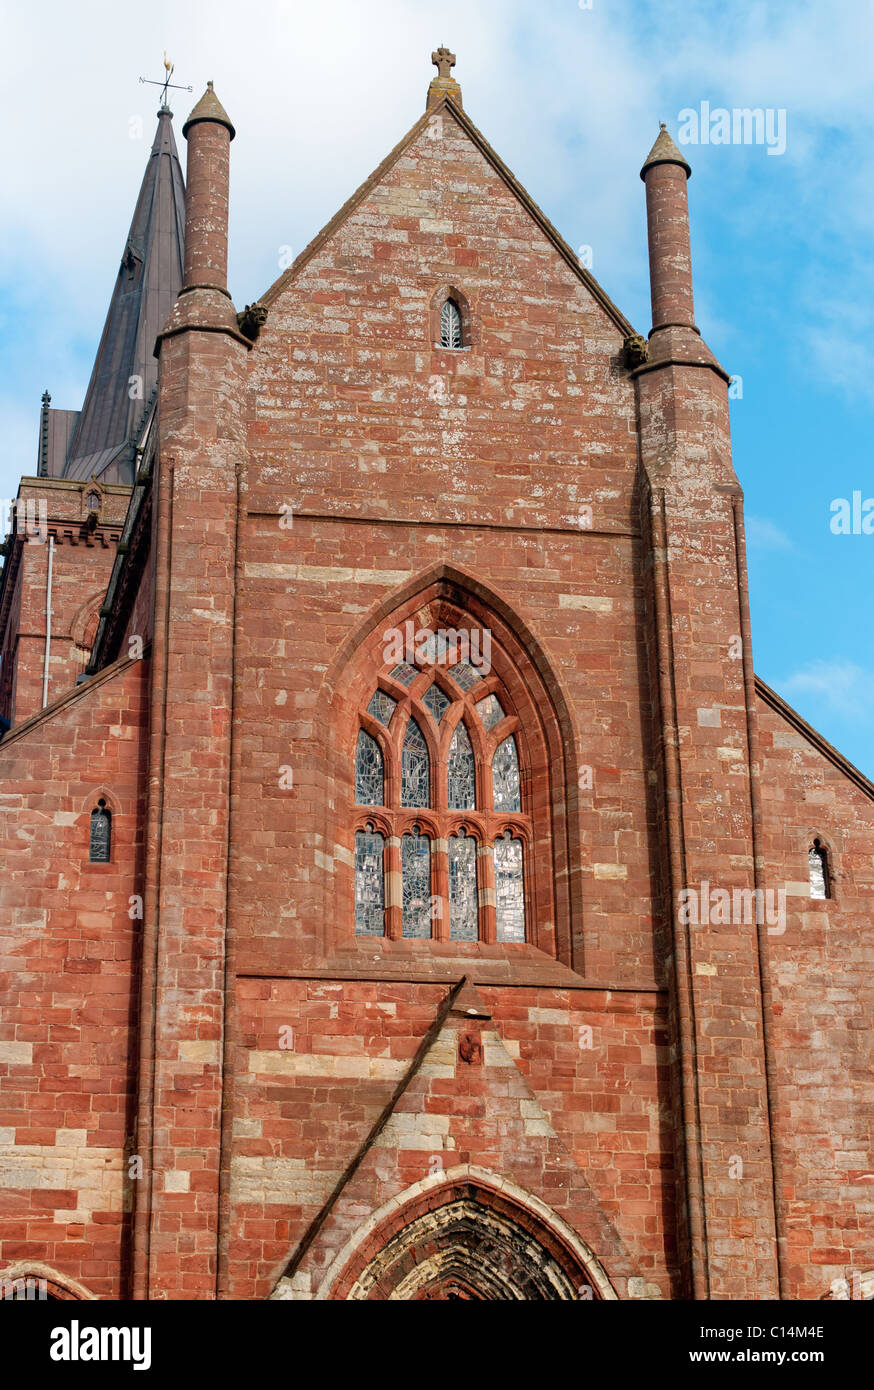 SAINT MAGNUS CATHEDRAL KIRKWALL ORKNEY ISLANDS  SCOTLAND  UNITED KINGDOM - Stock Image